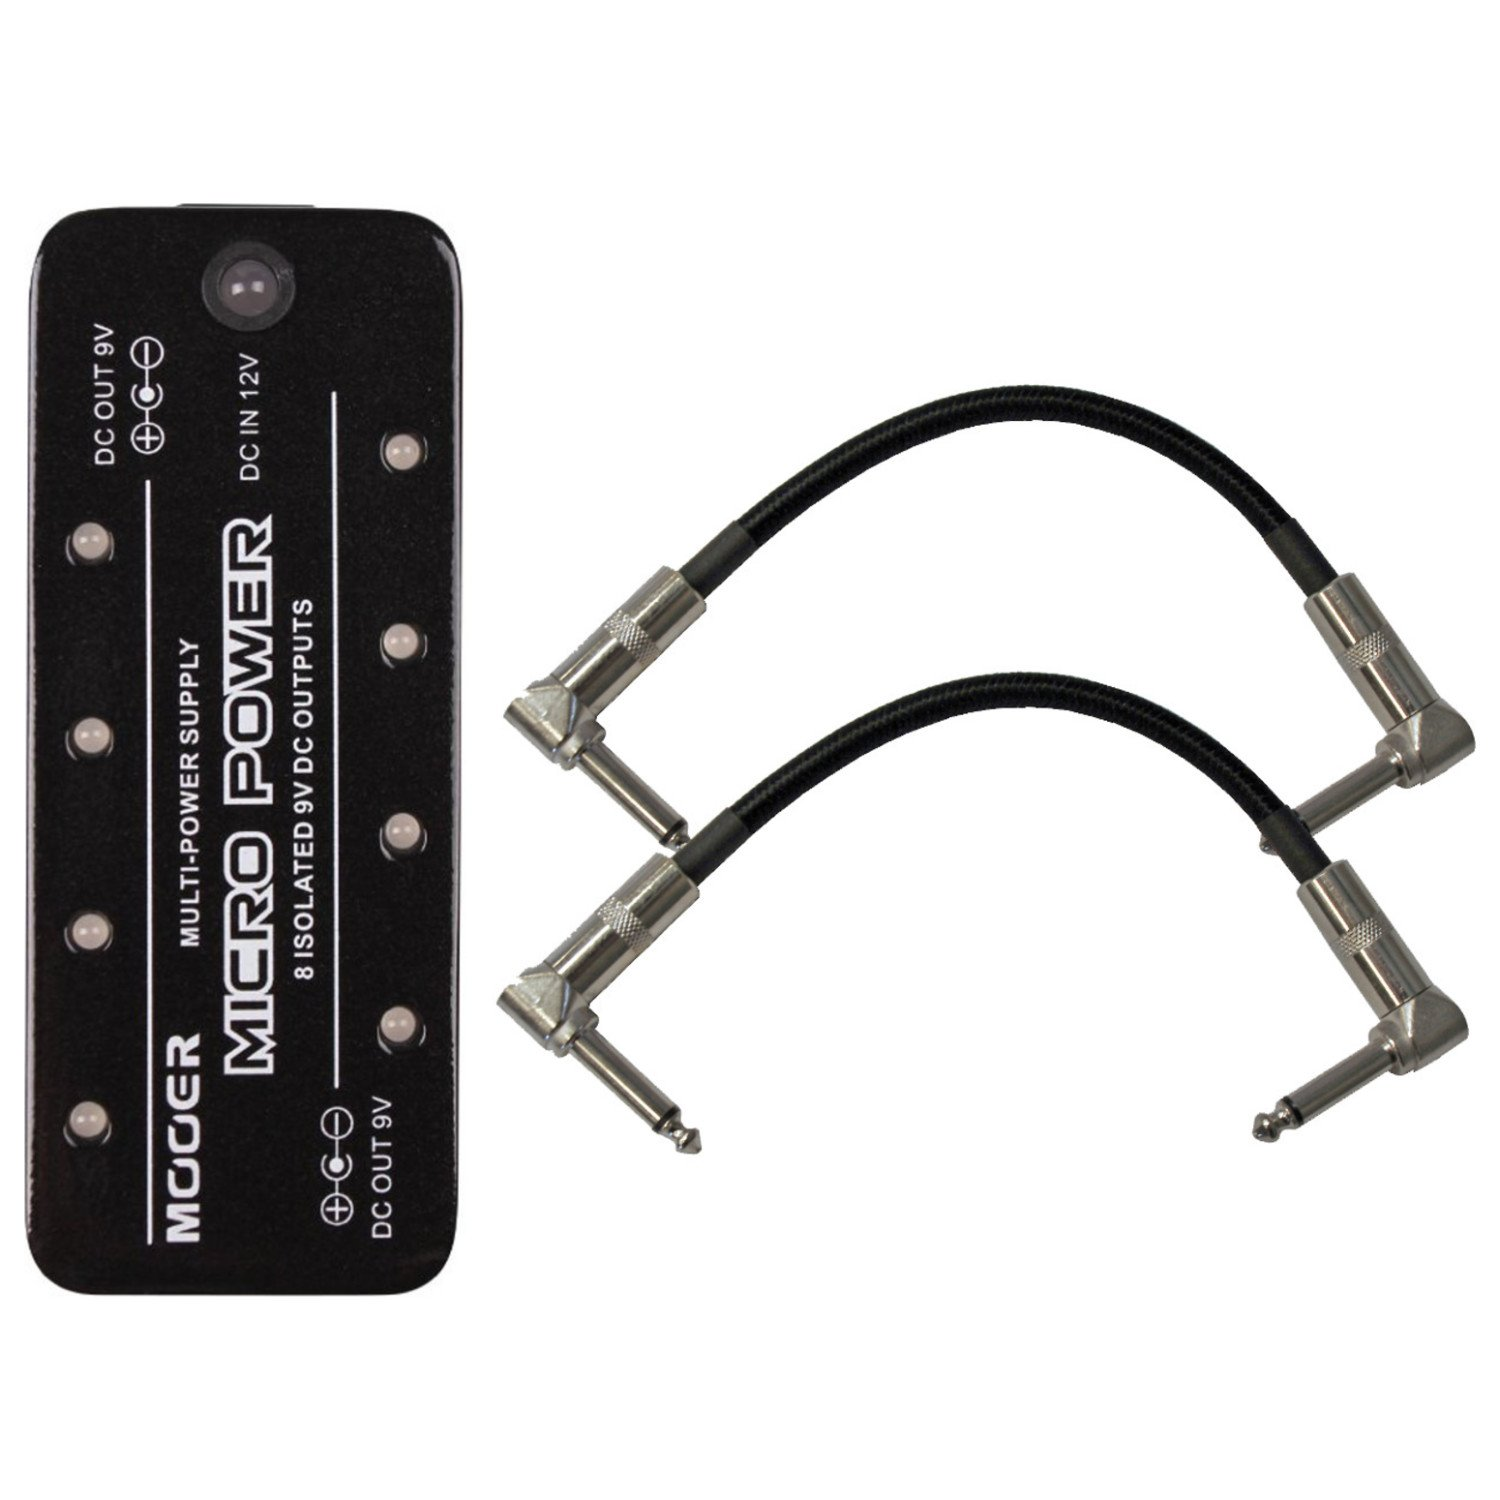 Mooer Micro Power Supply MicroPower 8 Isolated 9v 300mA Outputs w/ 2 Patch Cables by Mooer